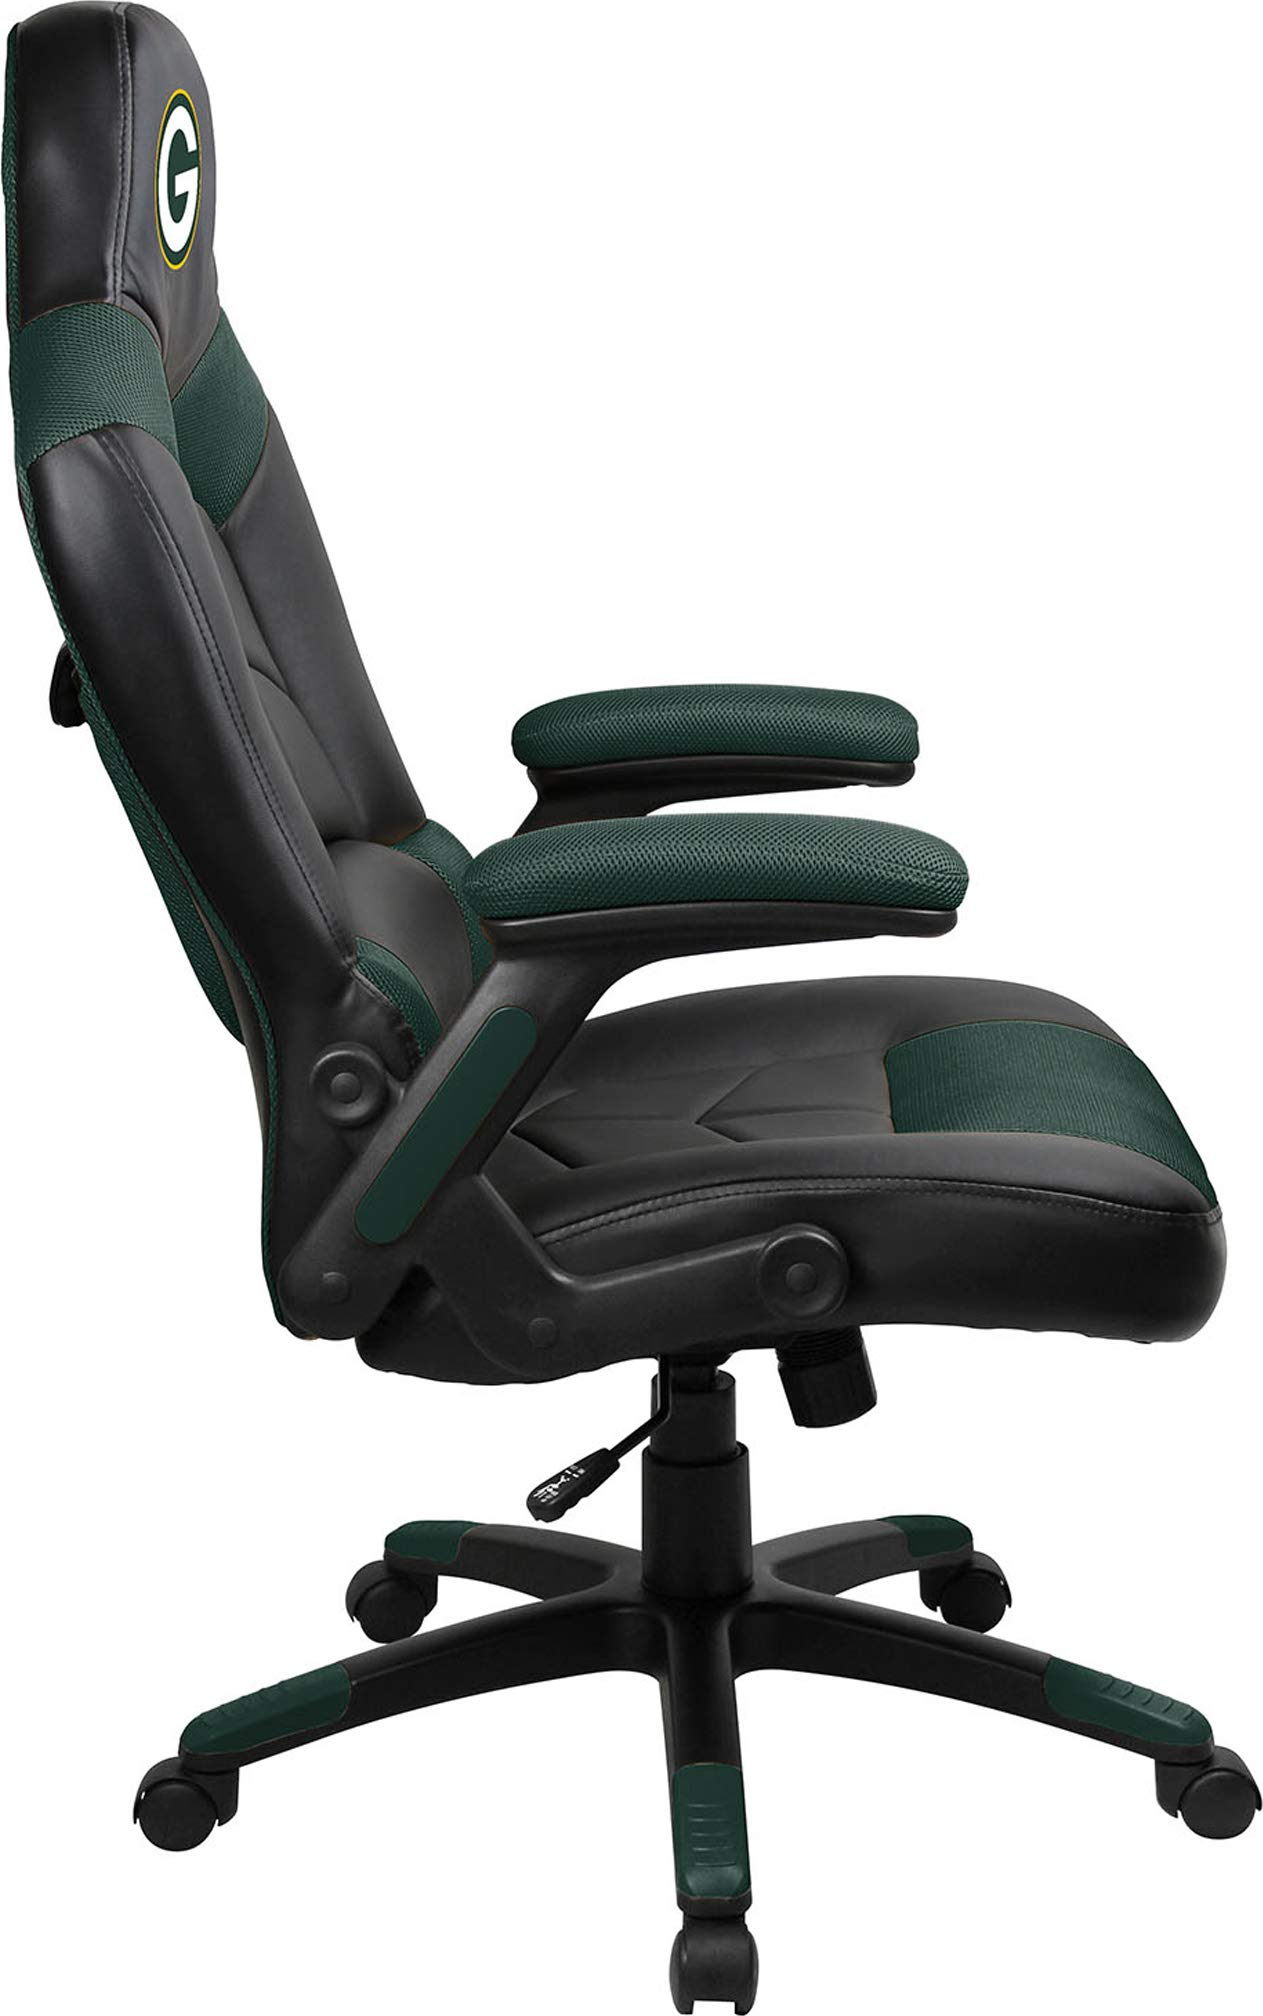 Imperial Officially Licensed NFL Furniture; Oversized Gaming Chairs, Green Bay Packers